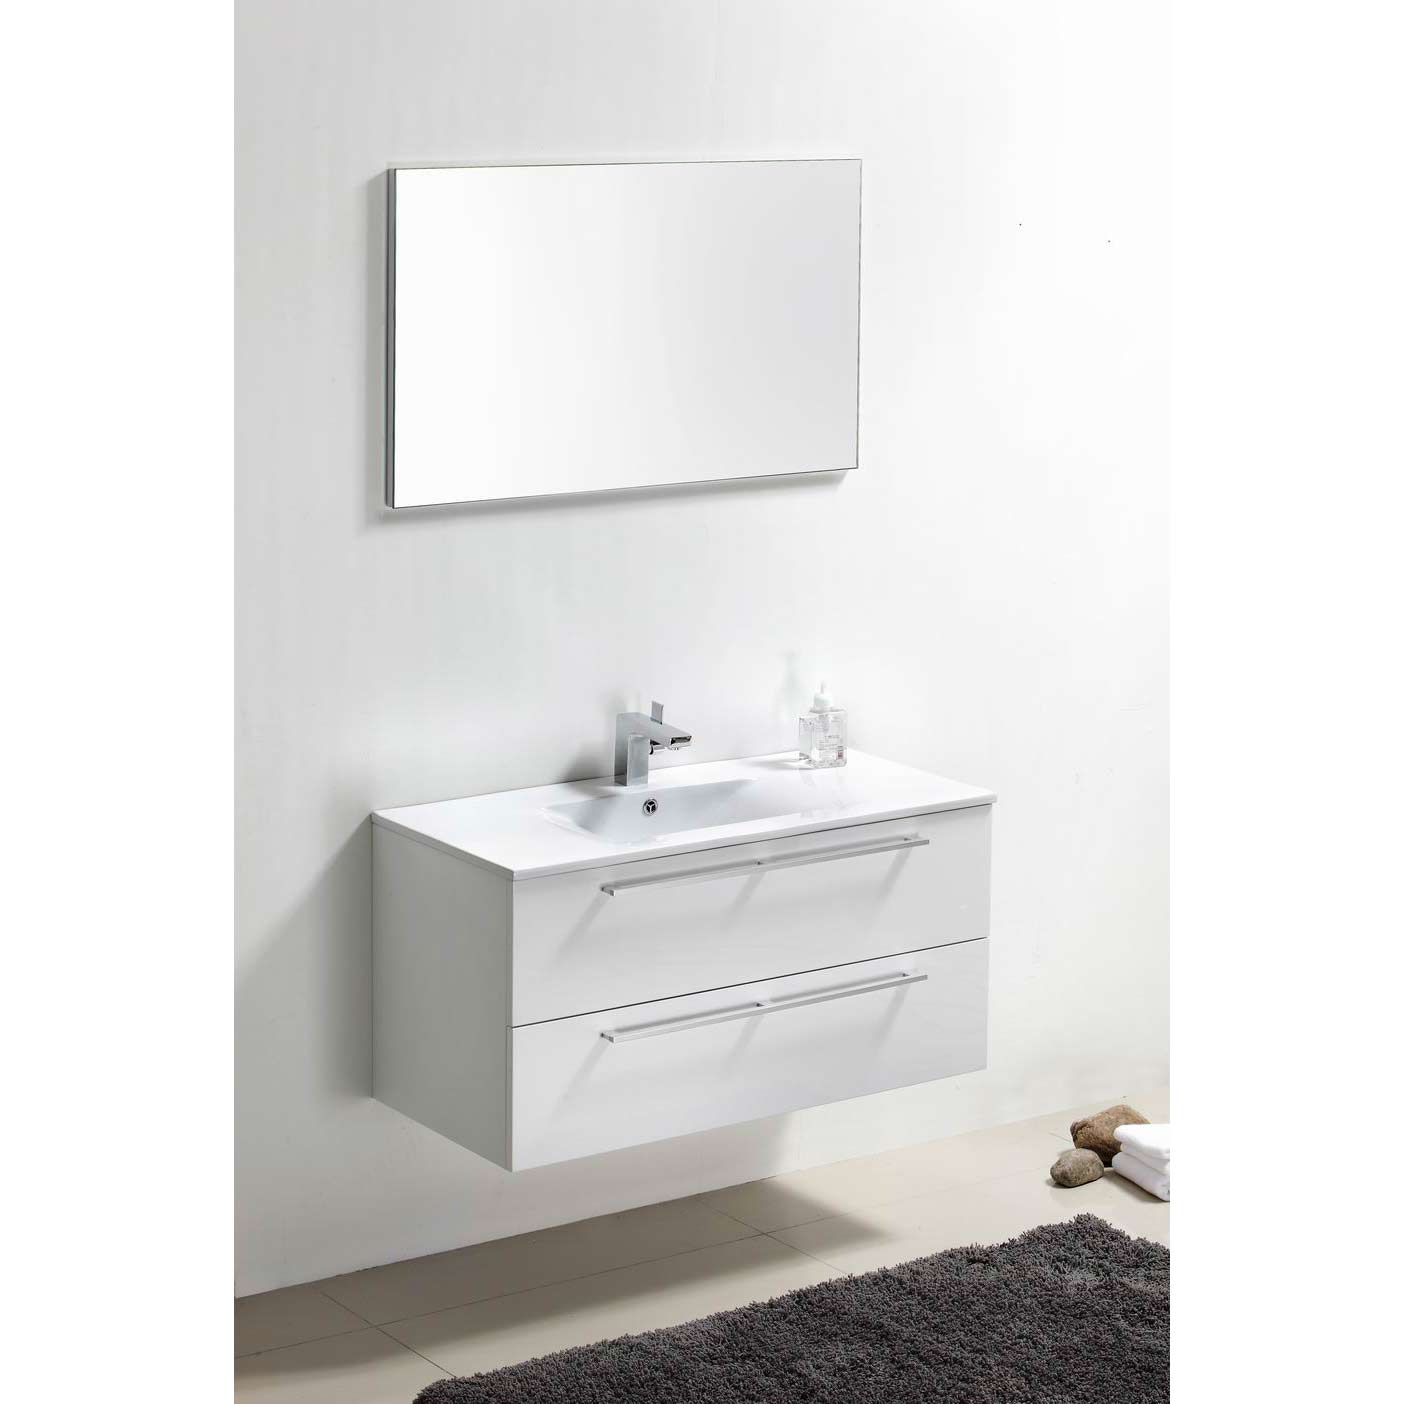 Buy caen 40 inch wall mount modern bathroom vanity set for Mirrors for bathroom vanity